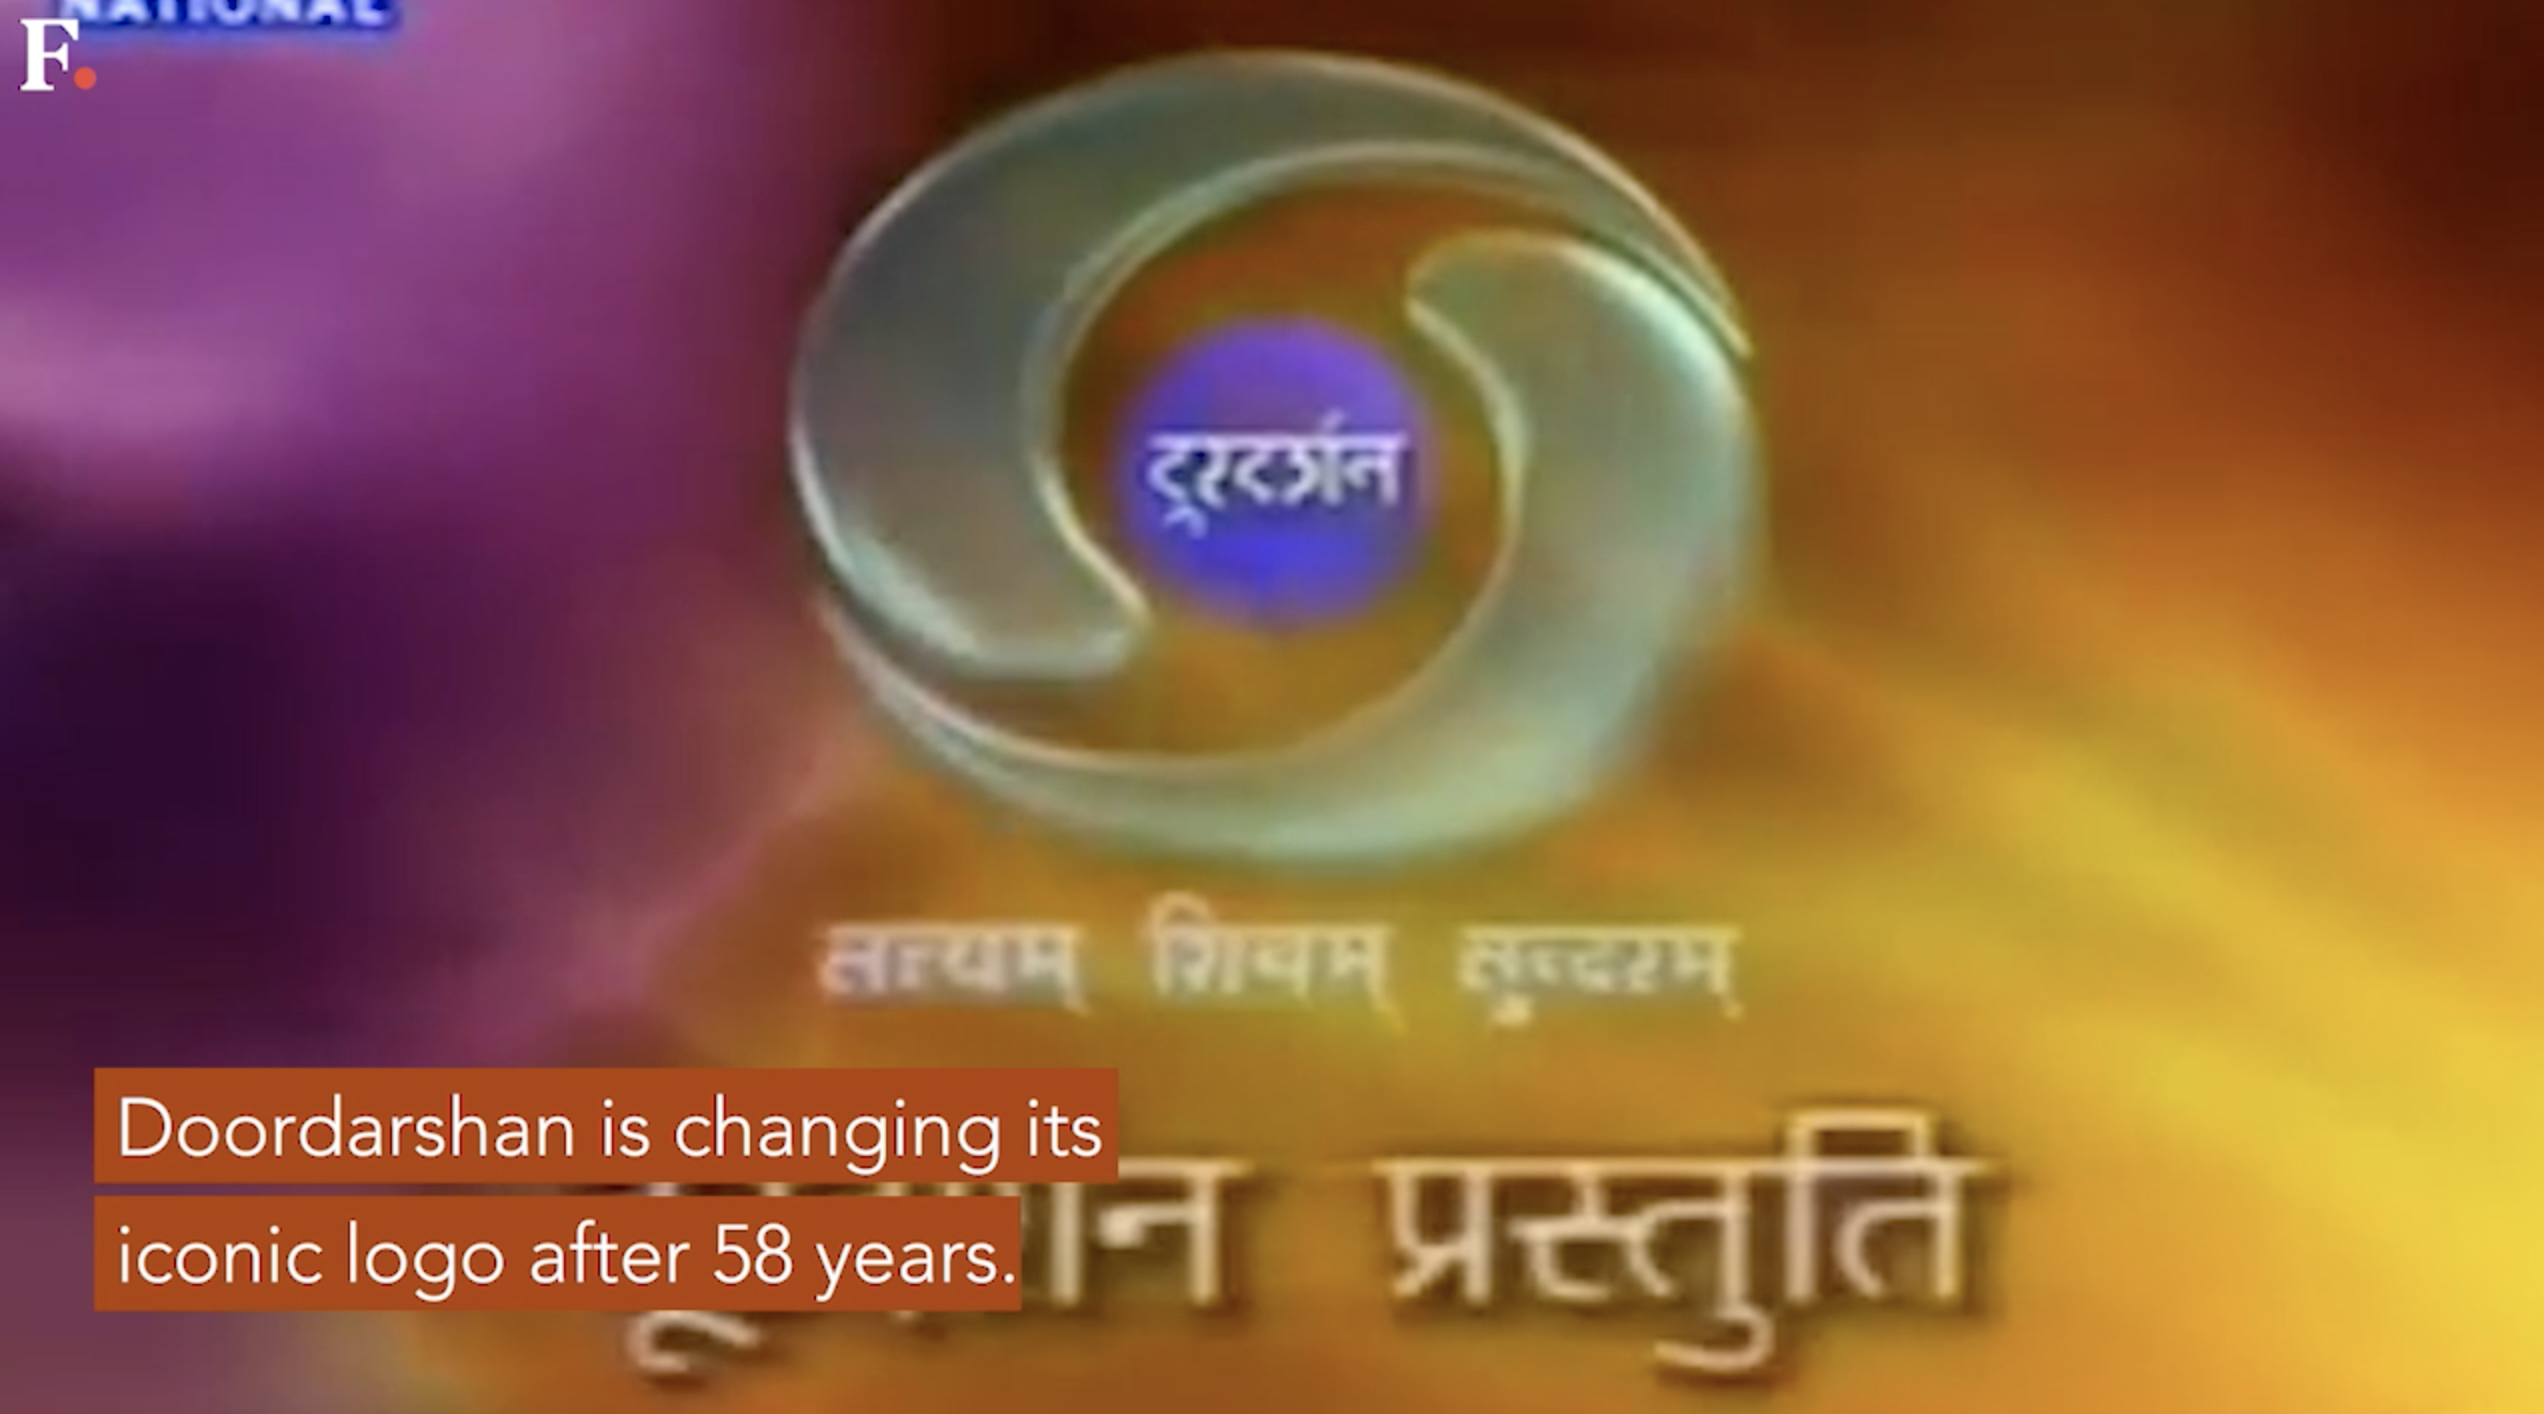 Doordarshan to change its logo after 58 years in attempt to connect with youth & Doordarshan to change its logo after 58 years in attempt to ... Pezcame.Com